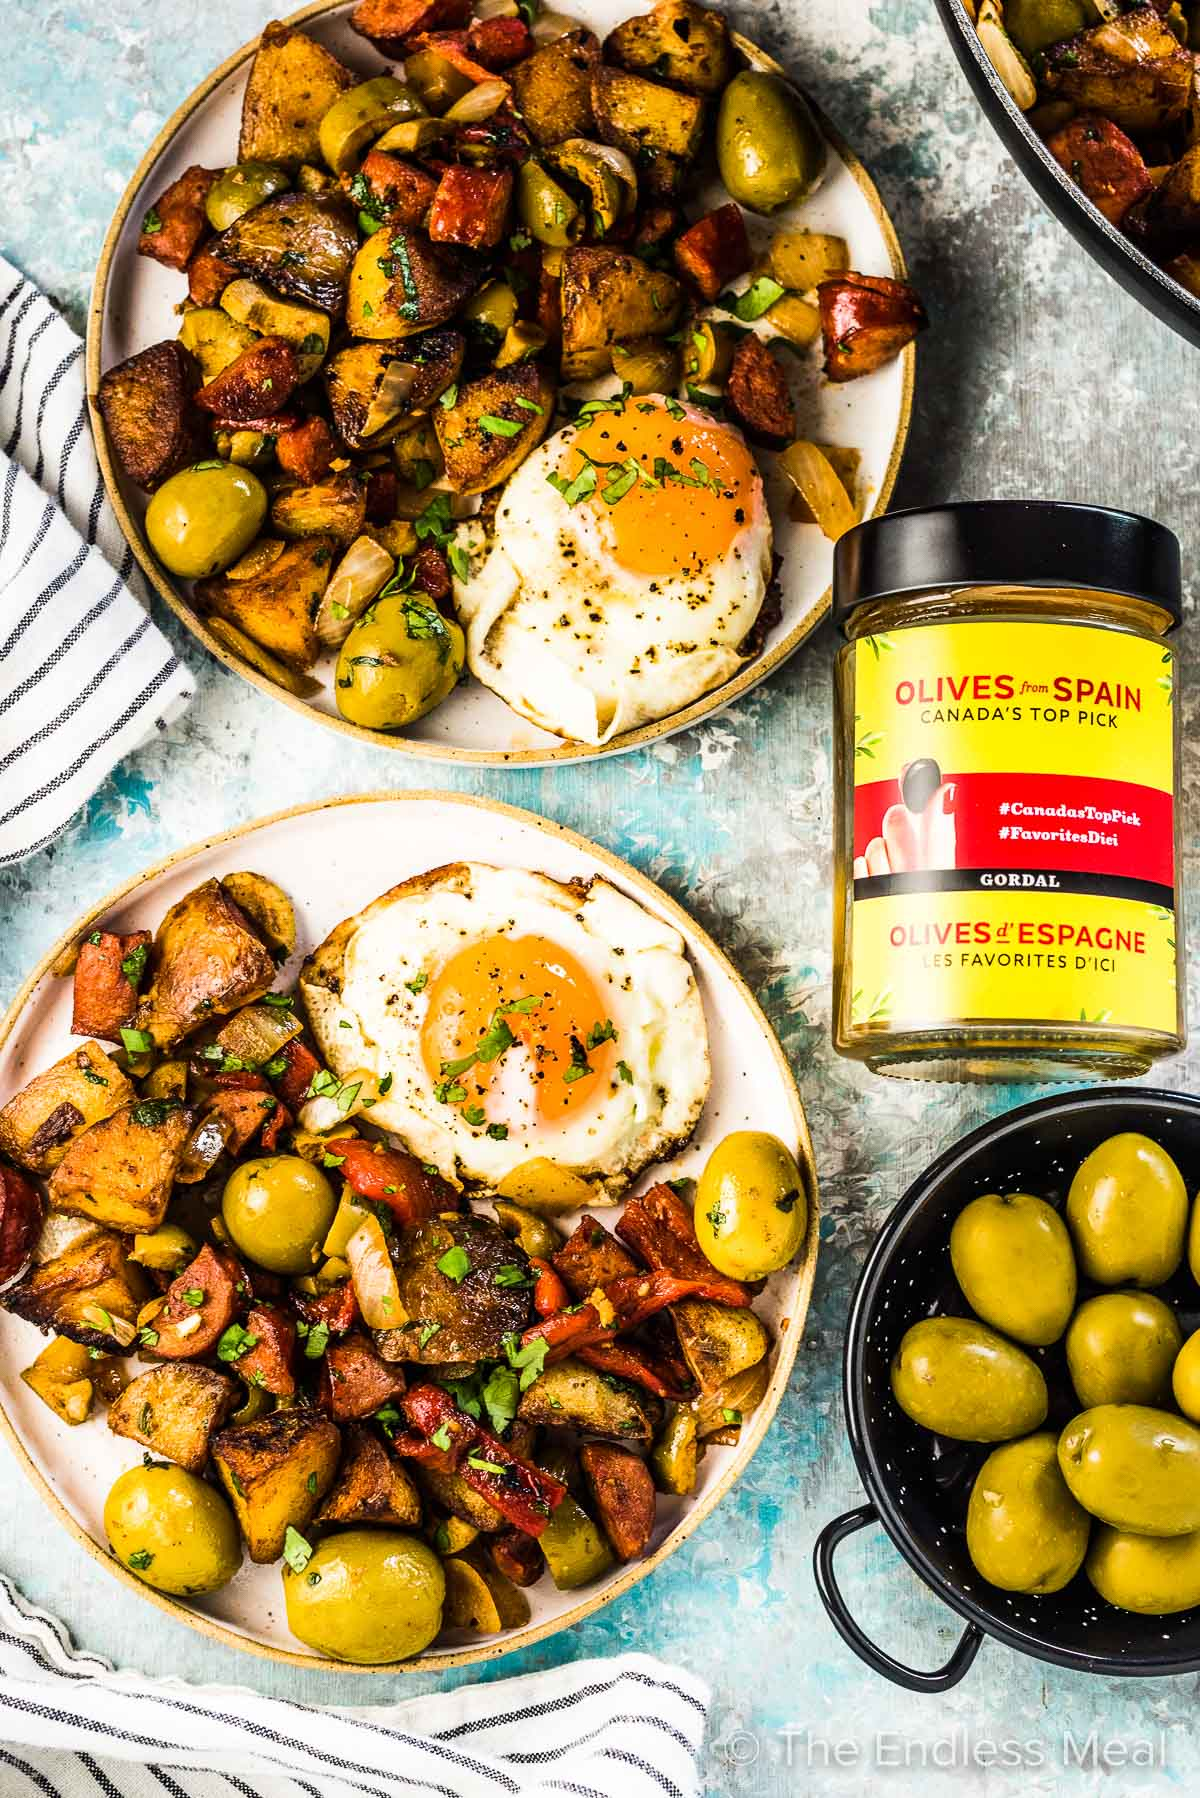 Two plates filled with Spanish breakfast potatoes and fried eggs with a jar of Spanish Hojiblanca olives beside them.